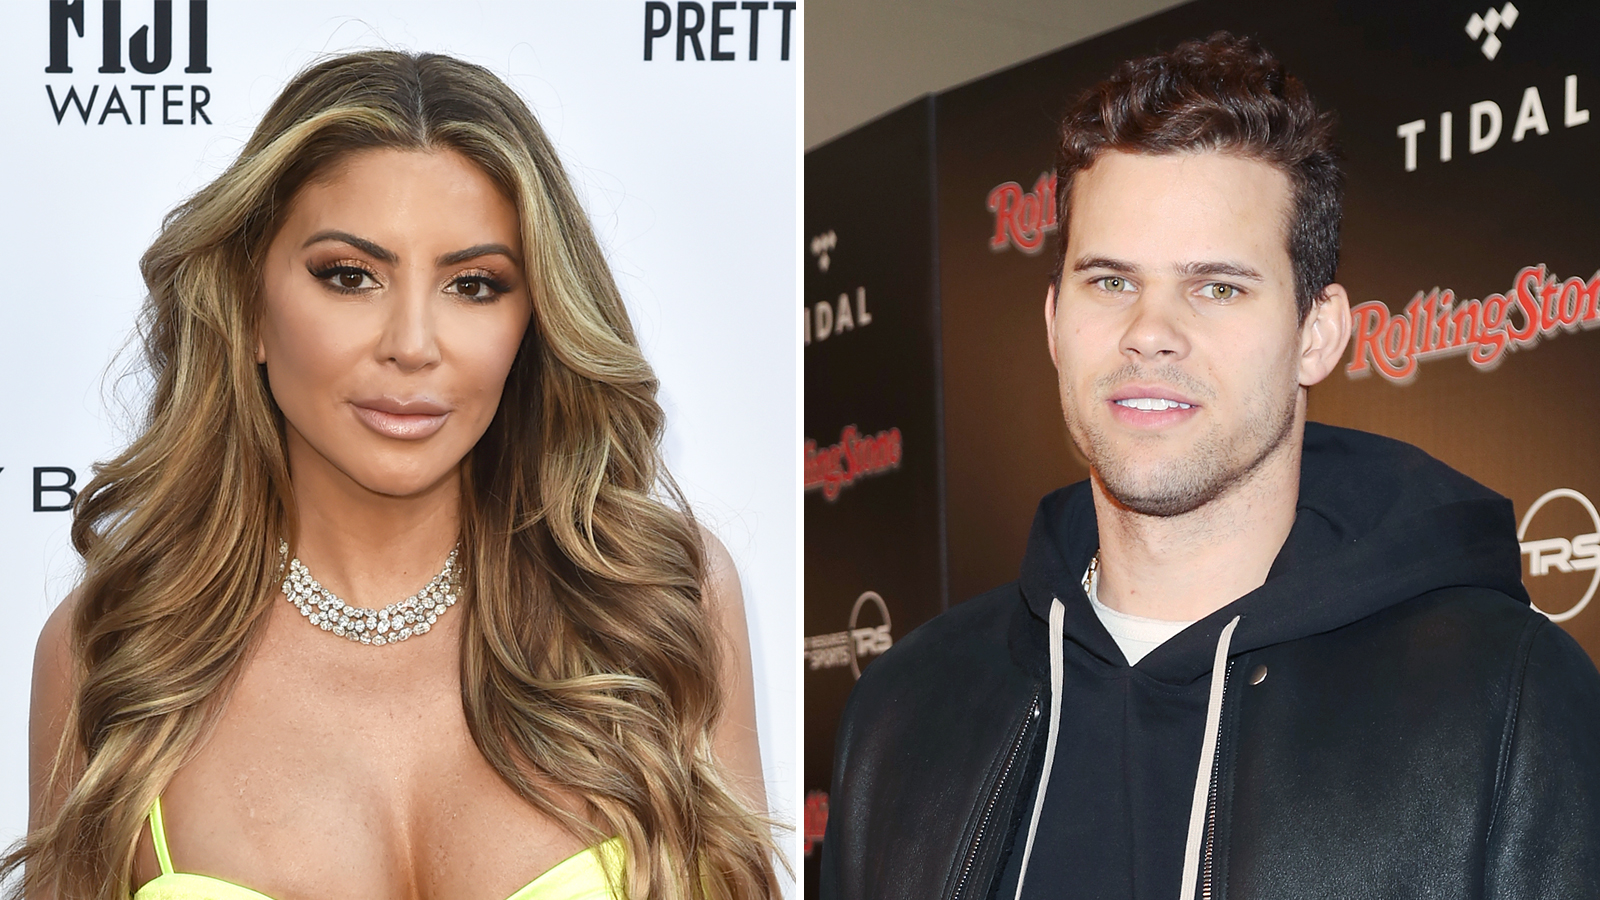 Kim Kardashian's Ex Kris Humphries and Bestie Larsa Pippen Were Spotted 'Playfully' Flirting at Coachella